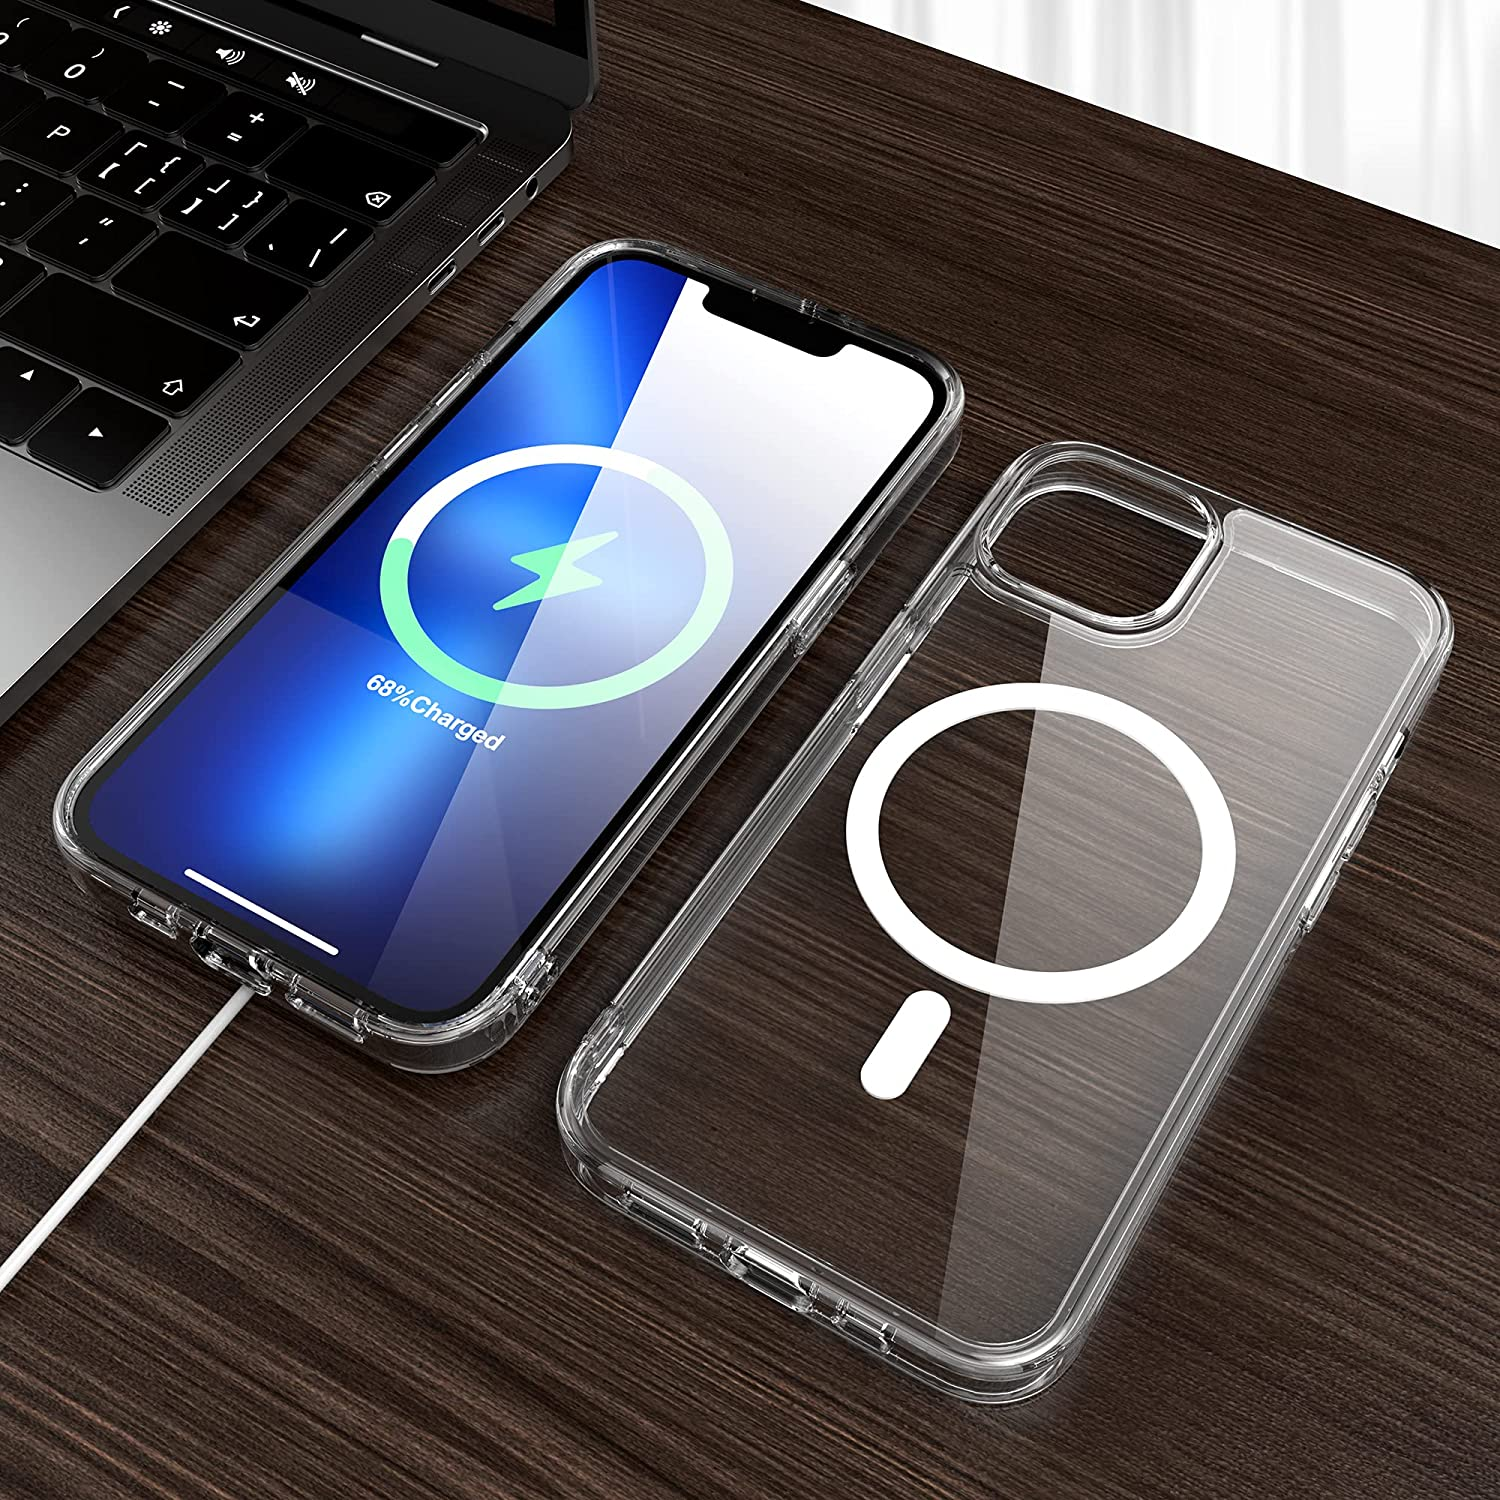 CITYWAY Magnetic Case Designed for iPhone 13 6.1 Inch, Compatible with MagSafe, Hard PC Back + Soft TPU Frame, Shockproof Clear Case, Non-Yellowing, Crystal Clear